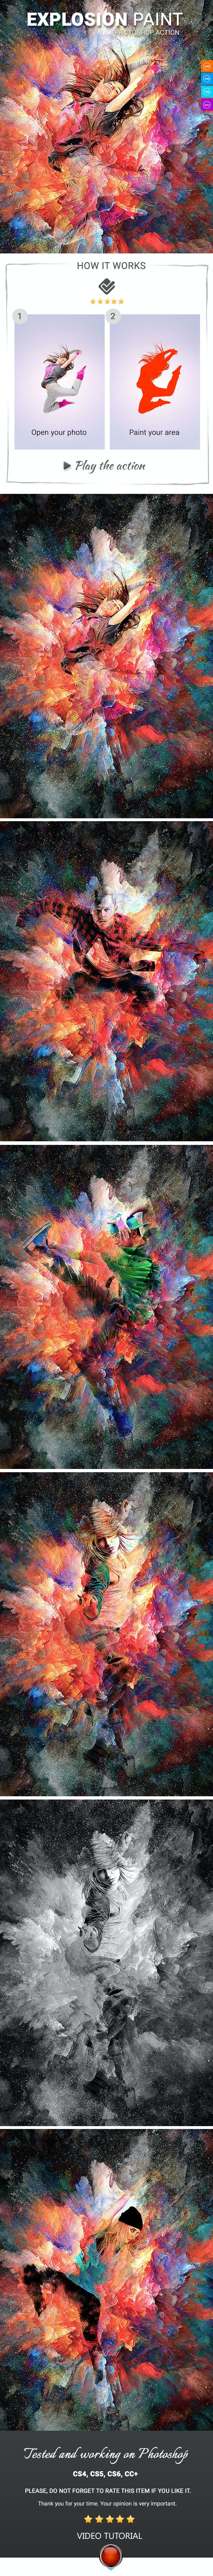 Explosion Paint Photoshop Action - Photo Effects Actions